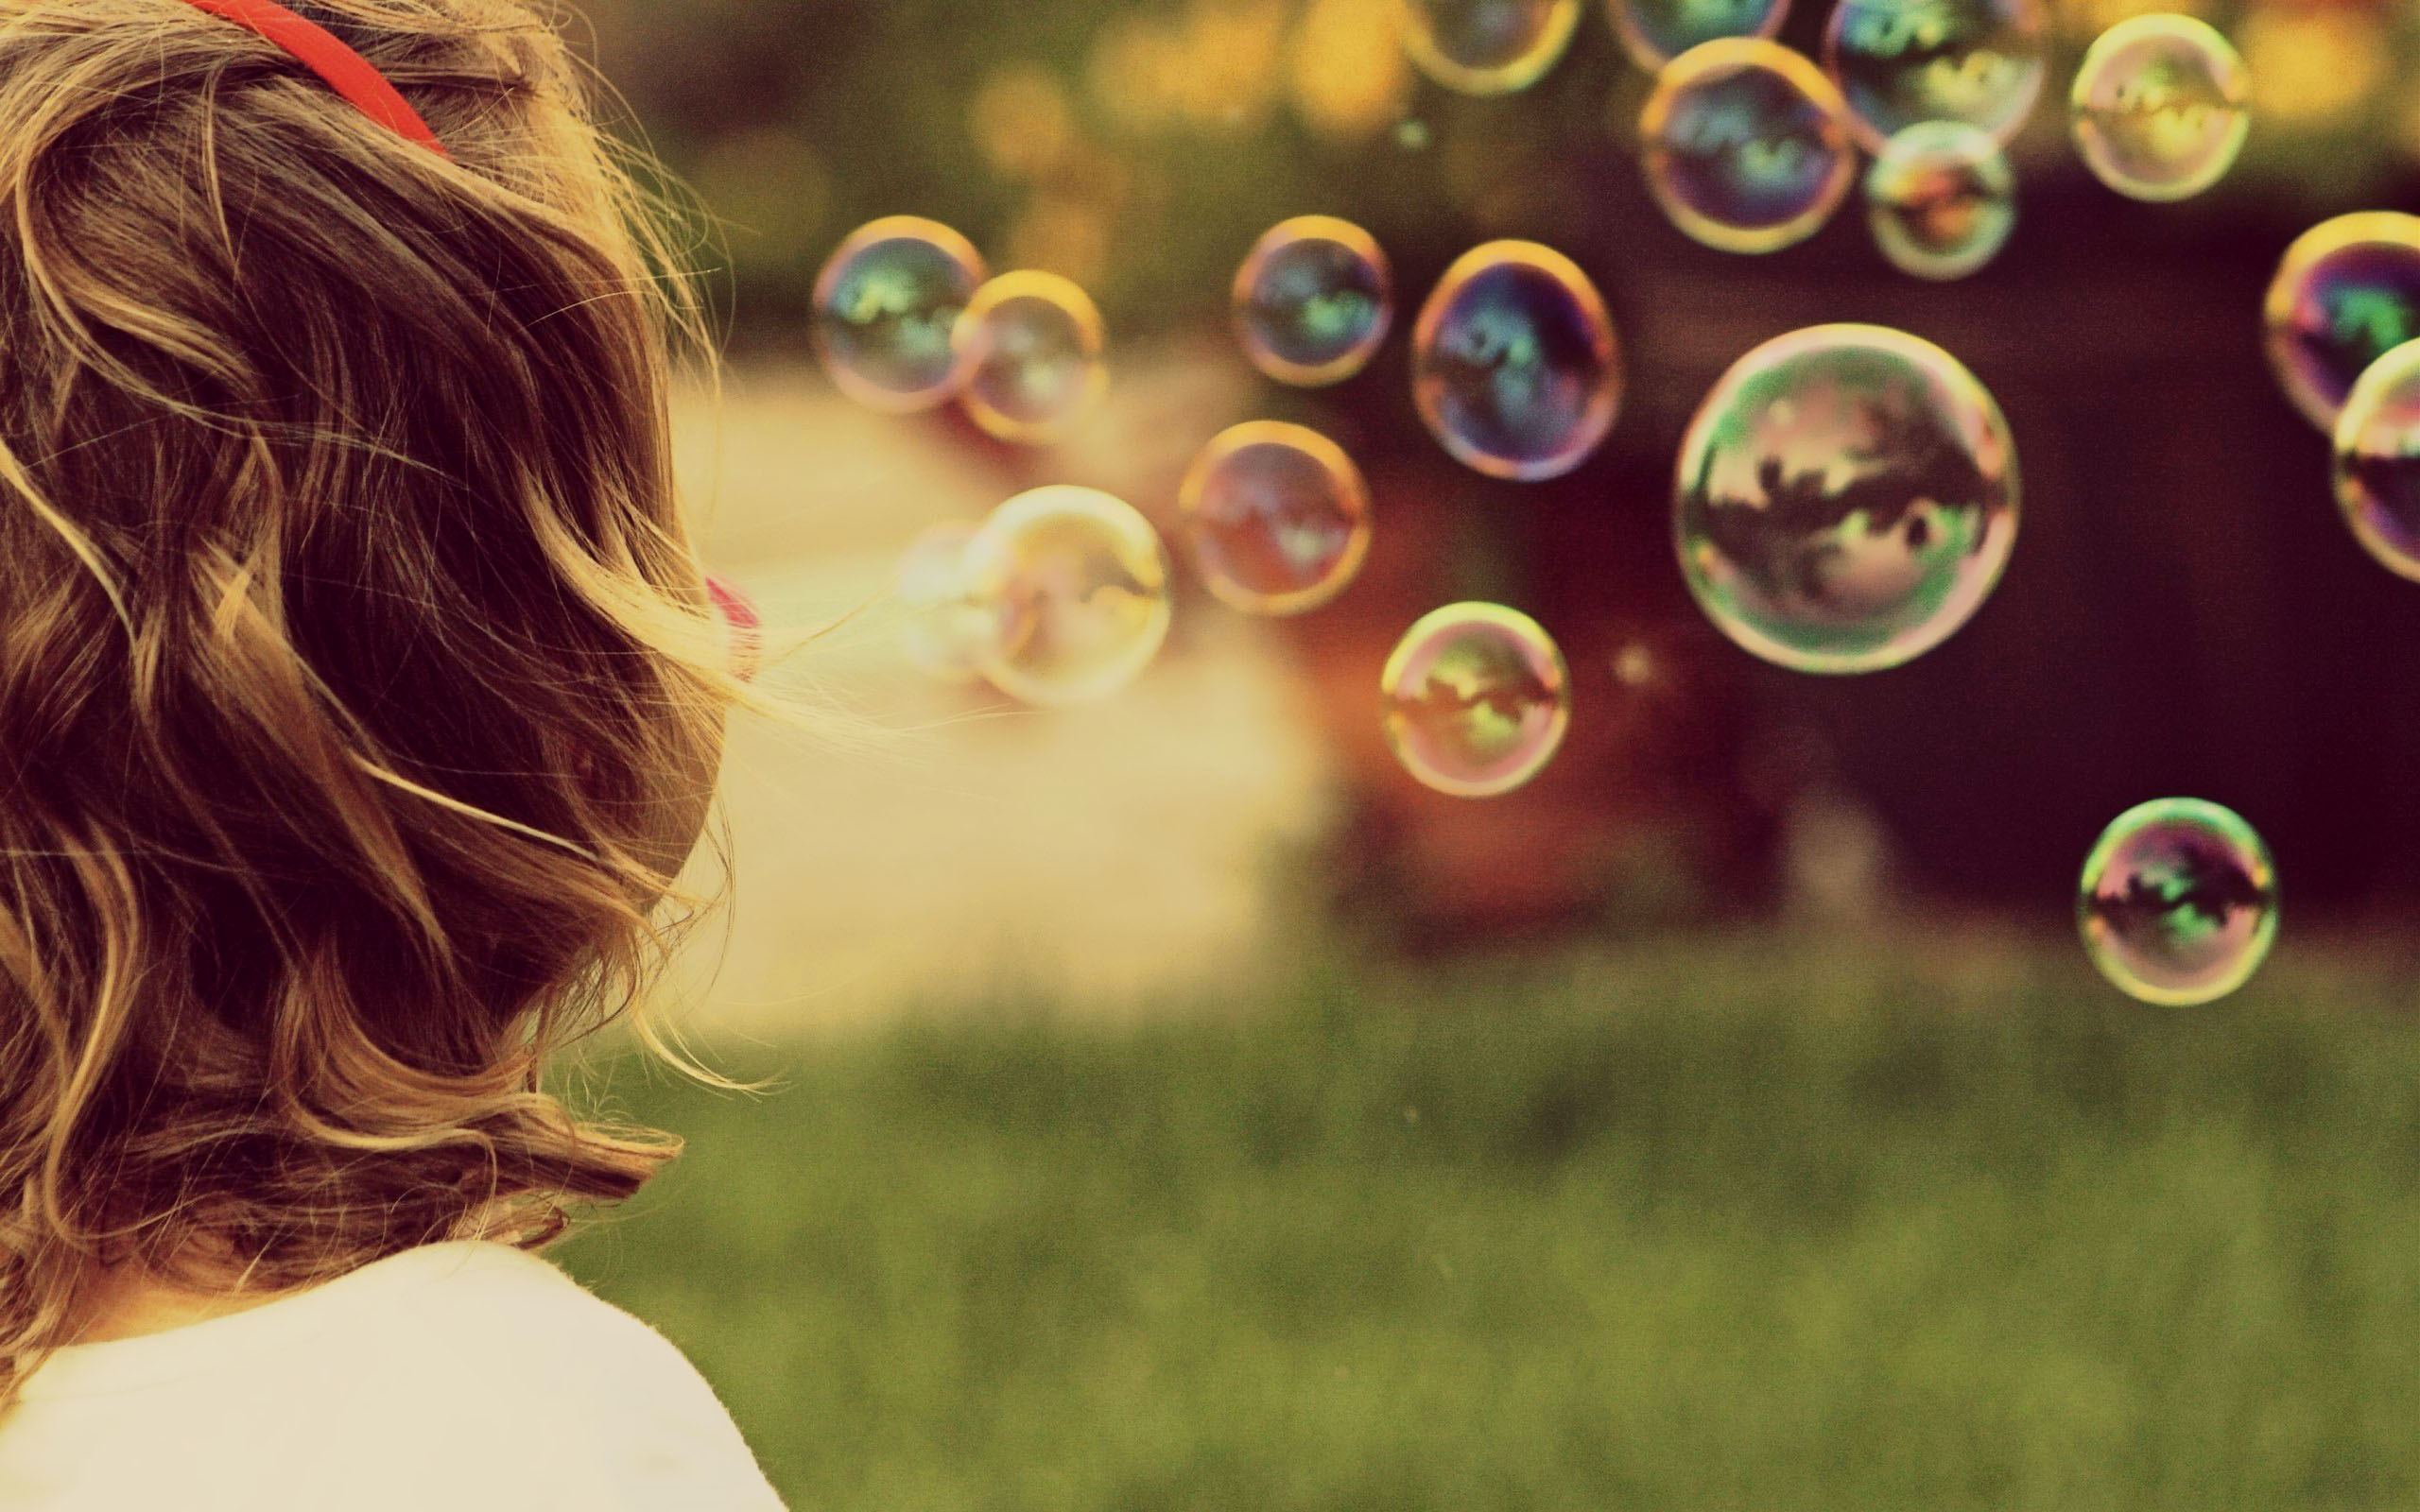 Beautiful Soap Bubbles Wallpaper